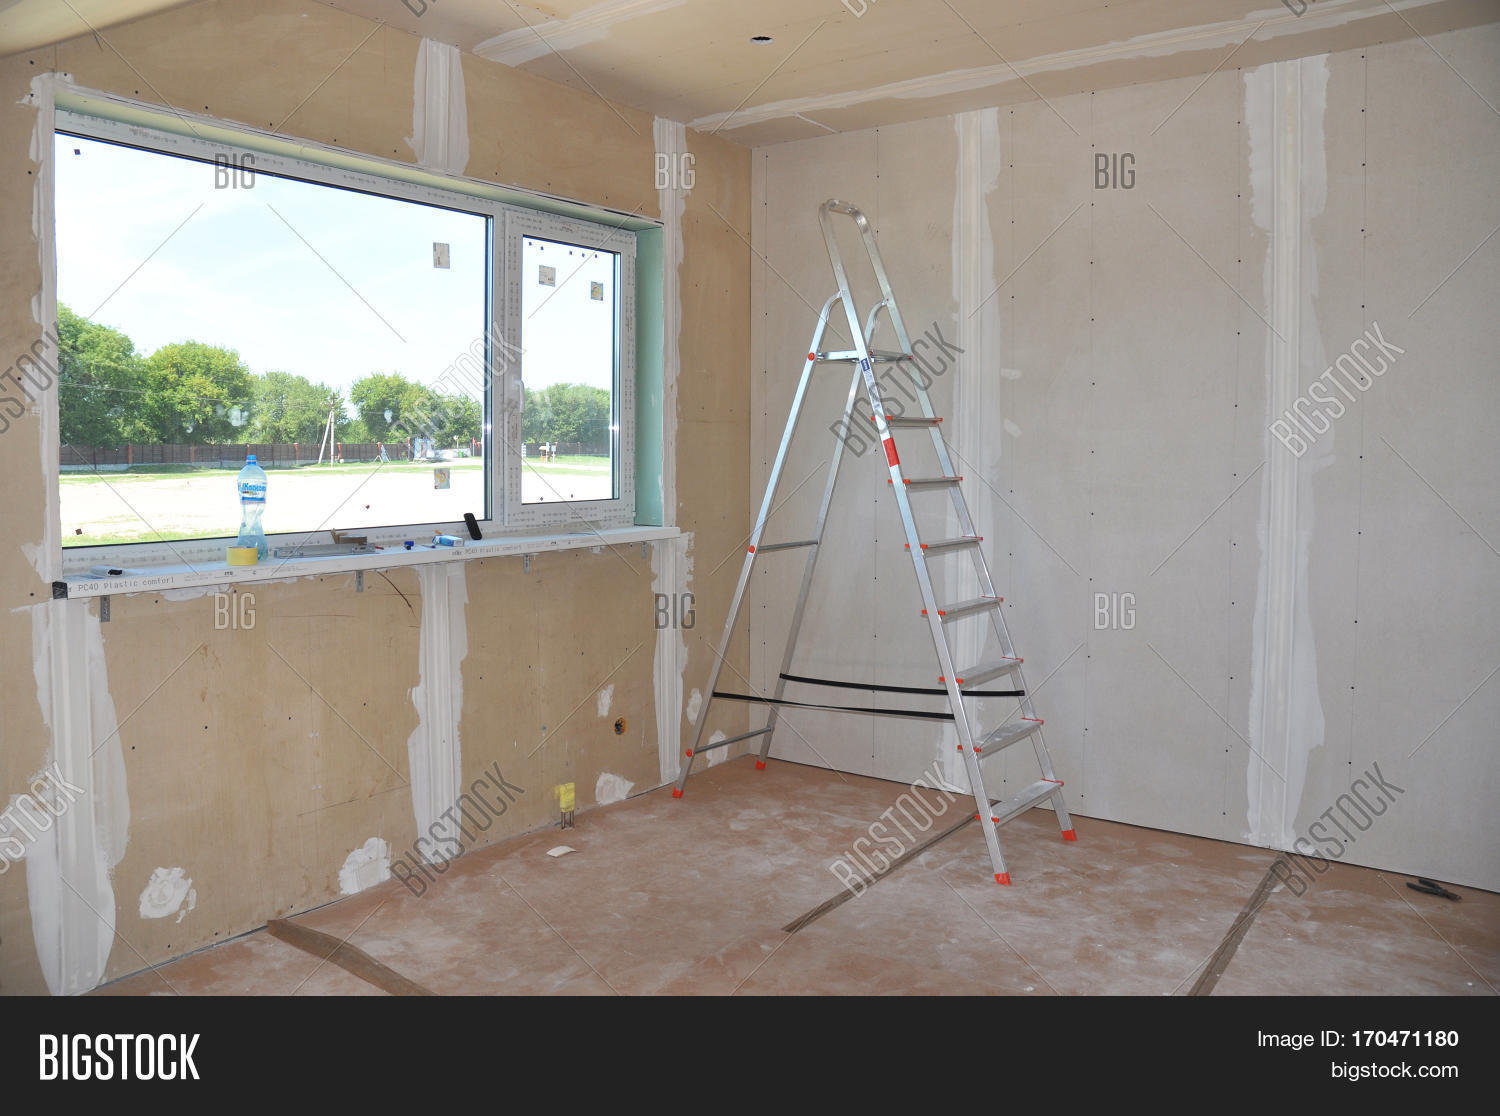 Plaster Building Construction Building Image Photo Free Trial Bigstock